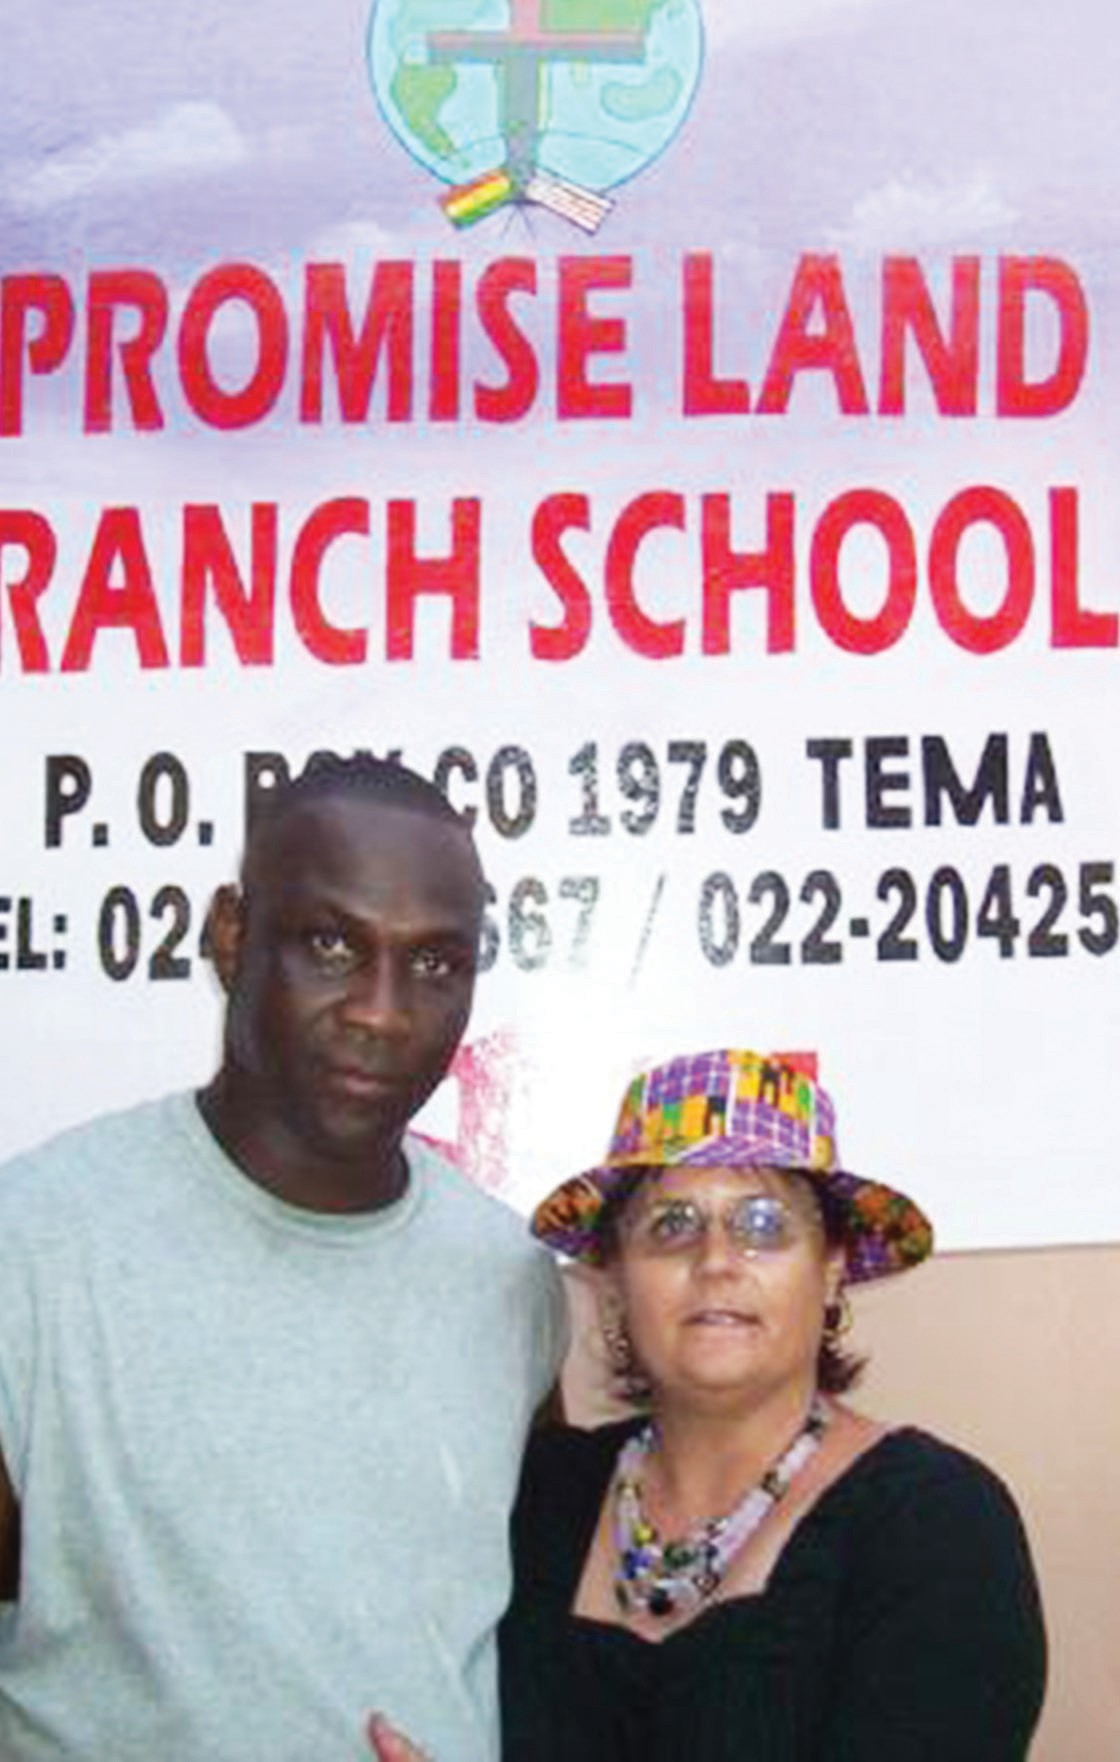 John & Tara Essien, founders of Promise Land Ranch School.